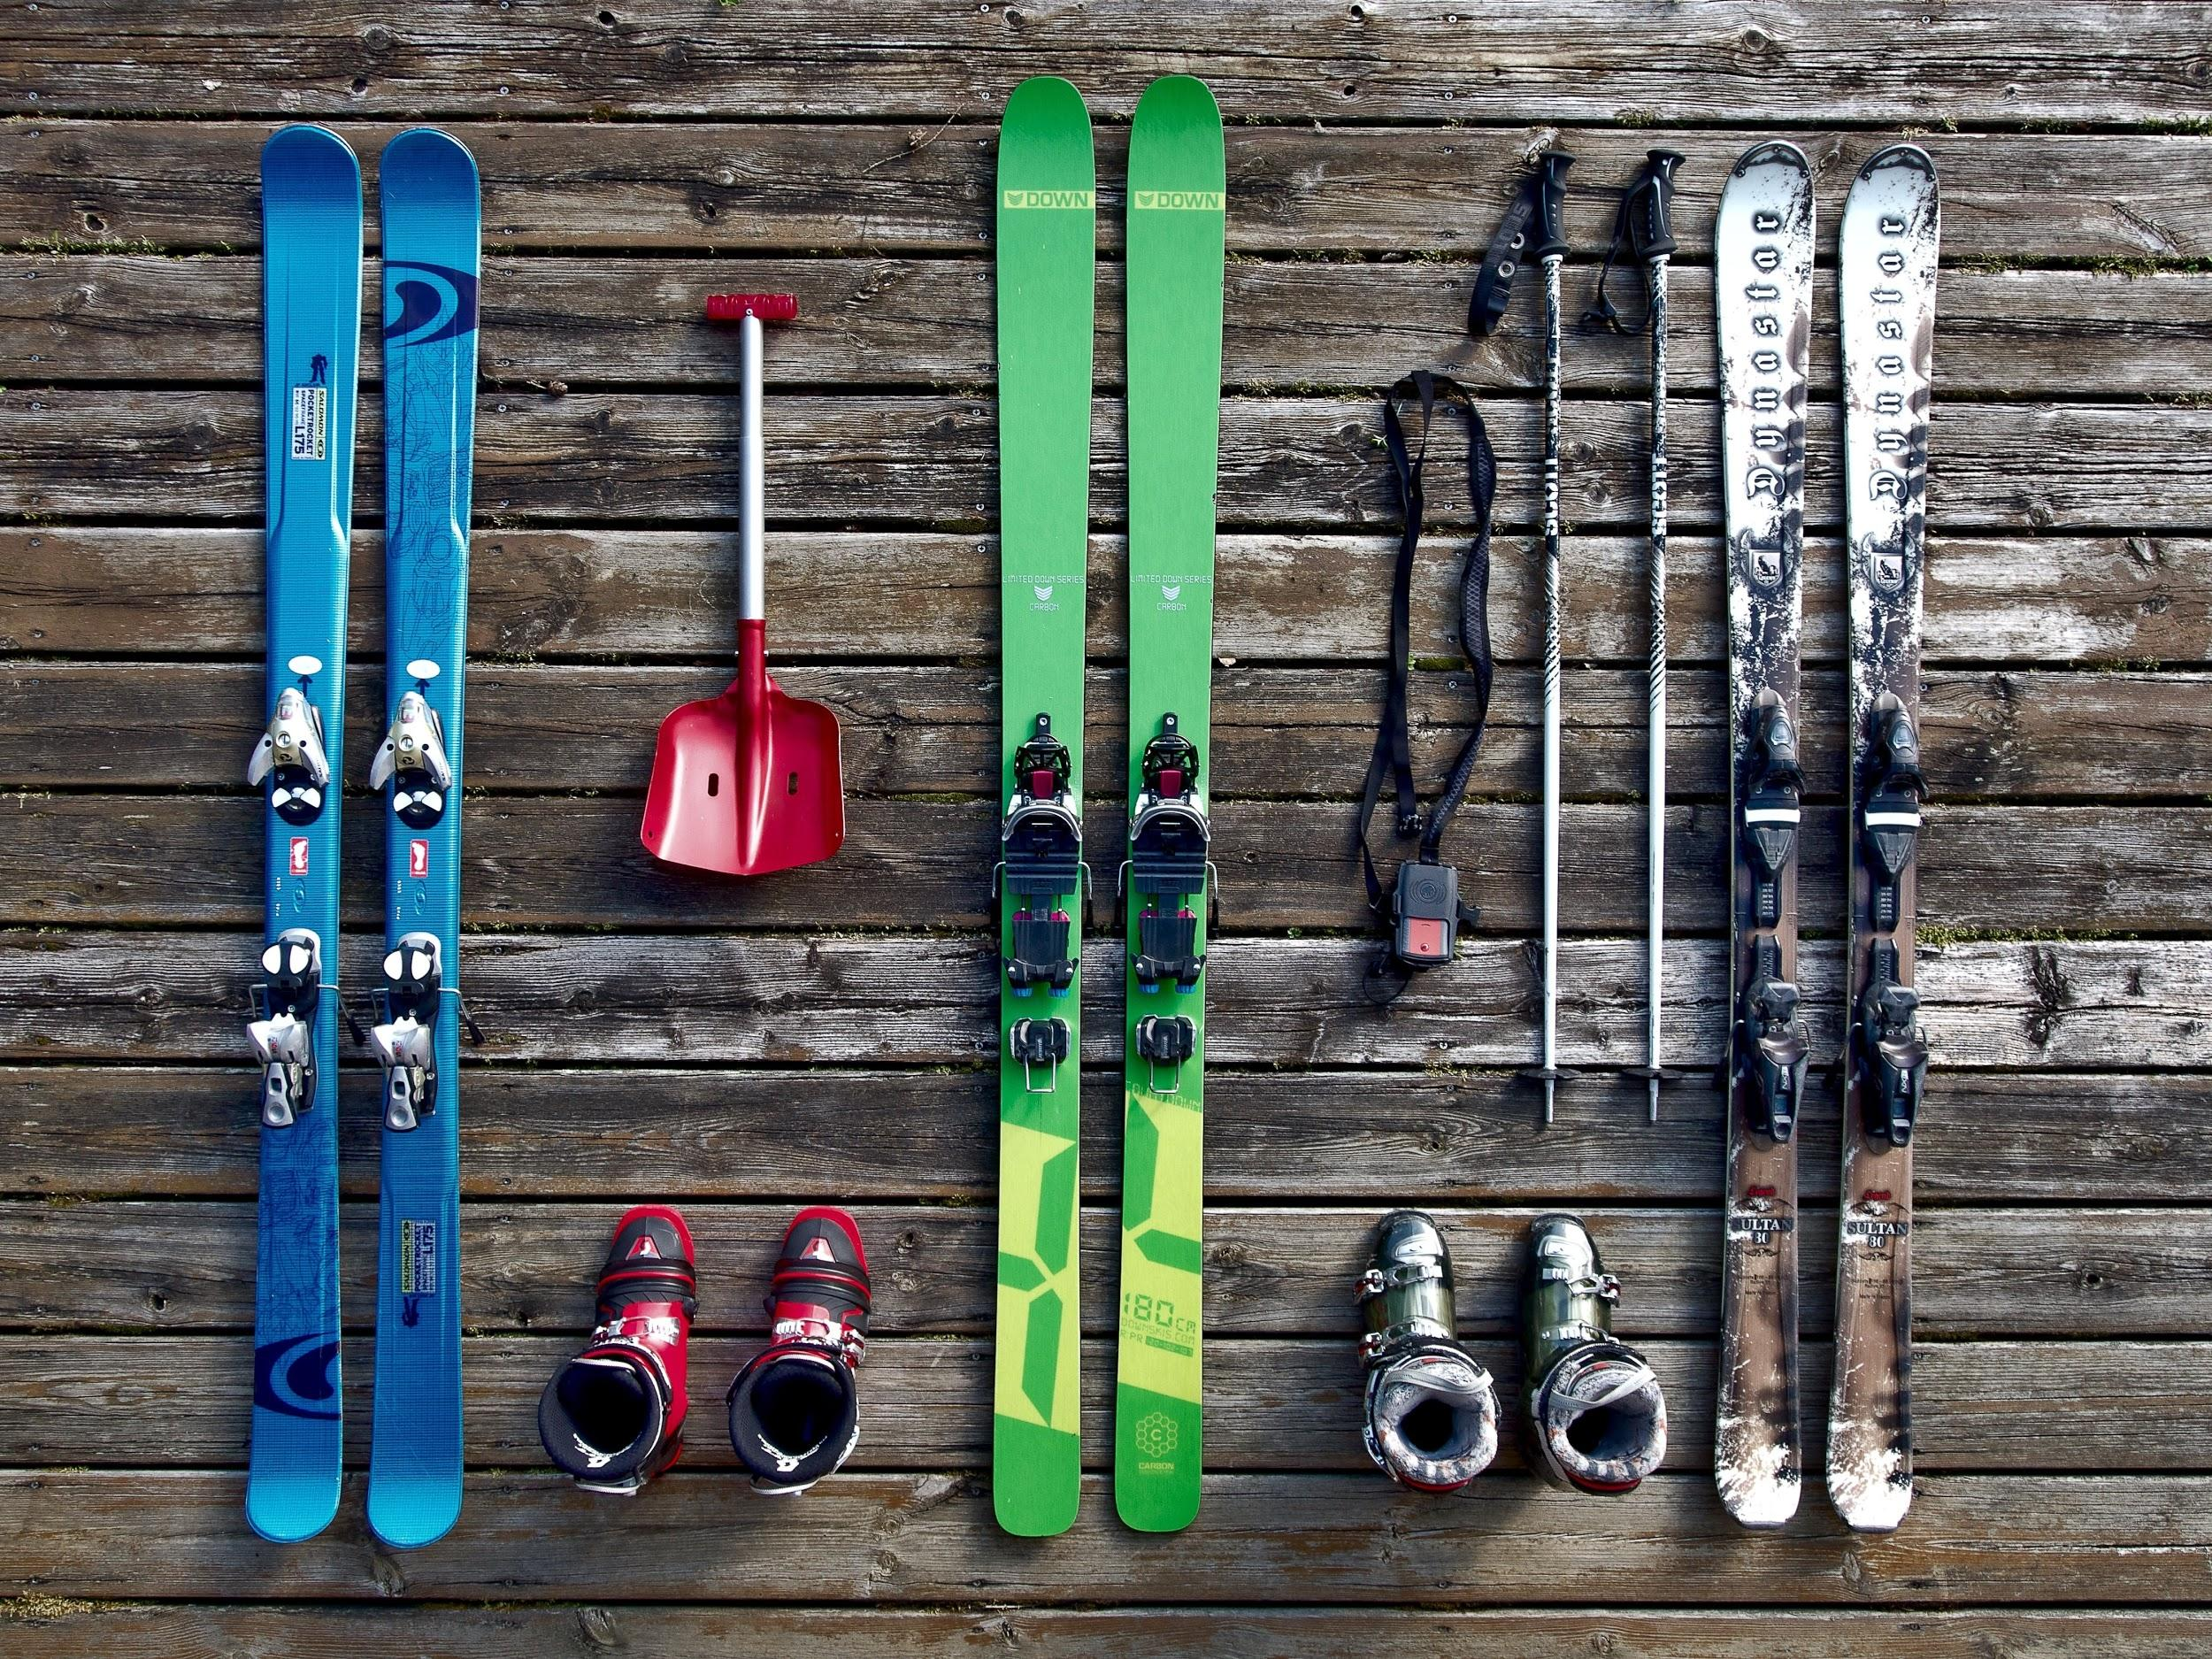 Excellent smart tech skiing devices to hit the slopes.